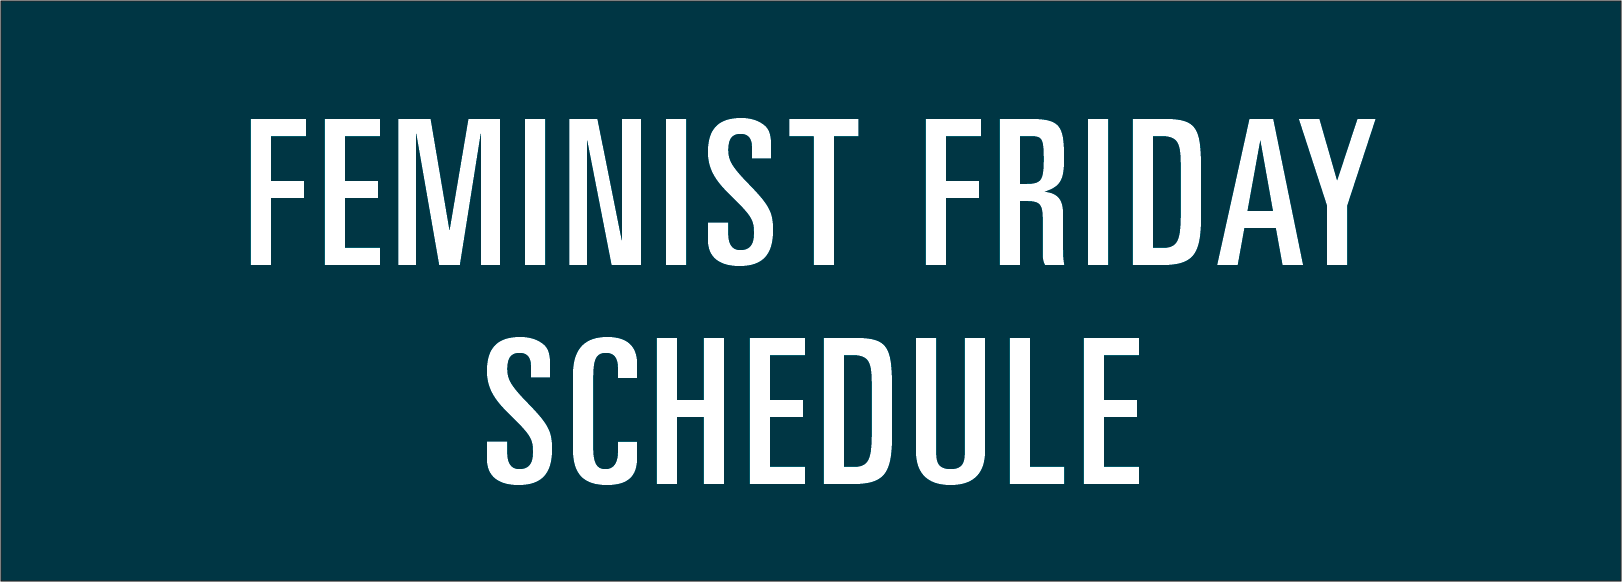 Feminist Friday Schedule Tile